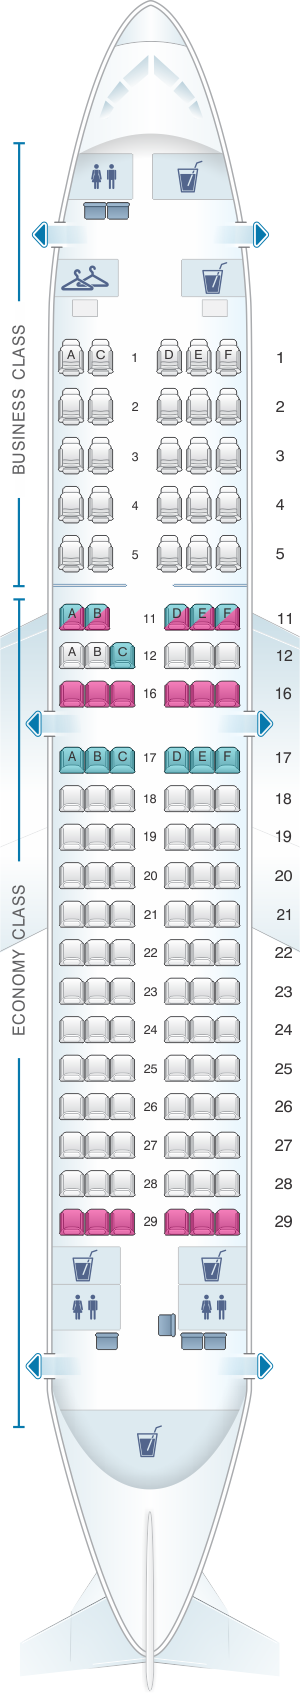 Seat map for South African Airways Airbus A319 100